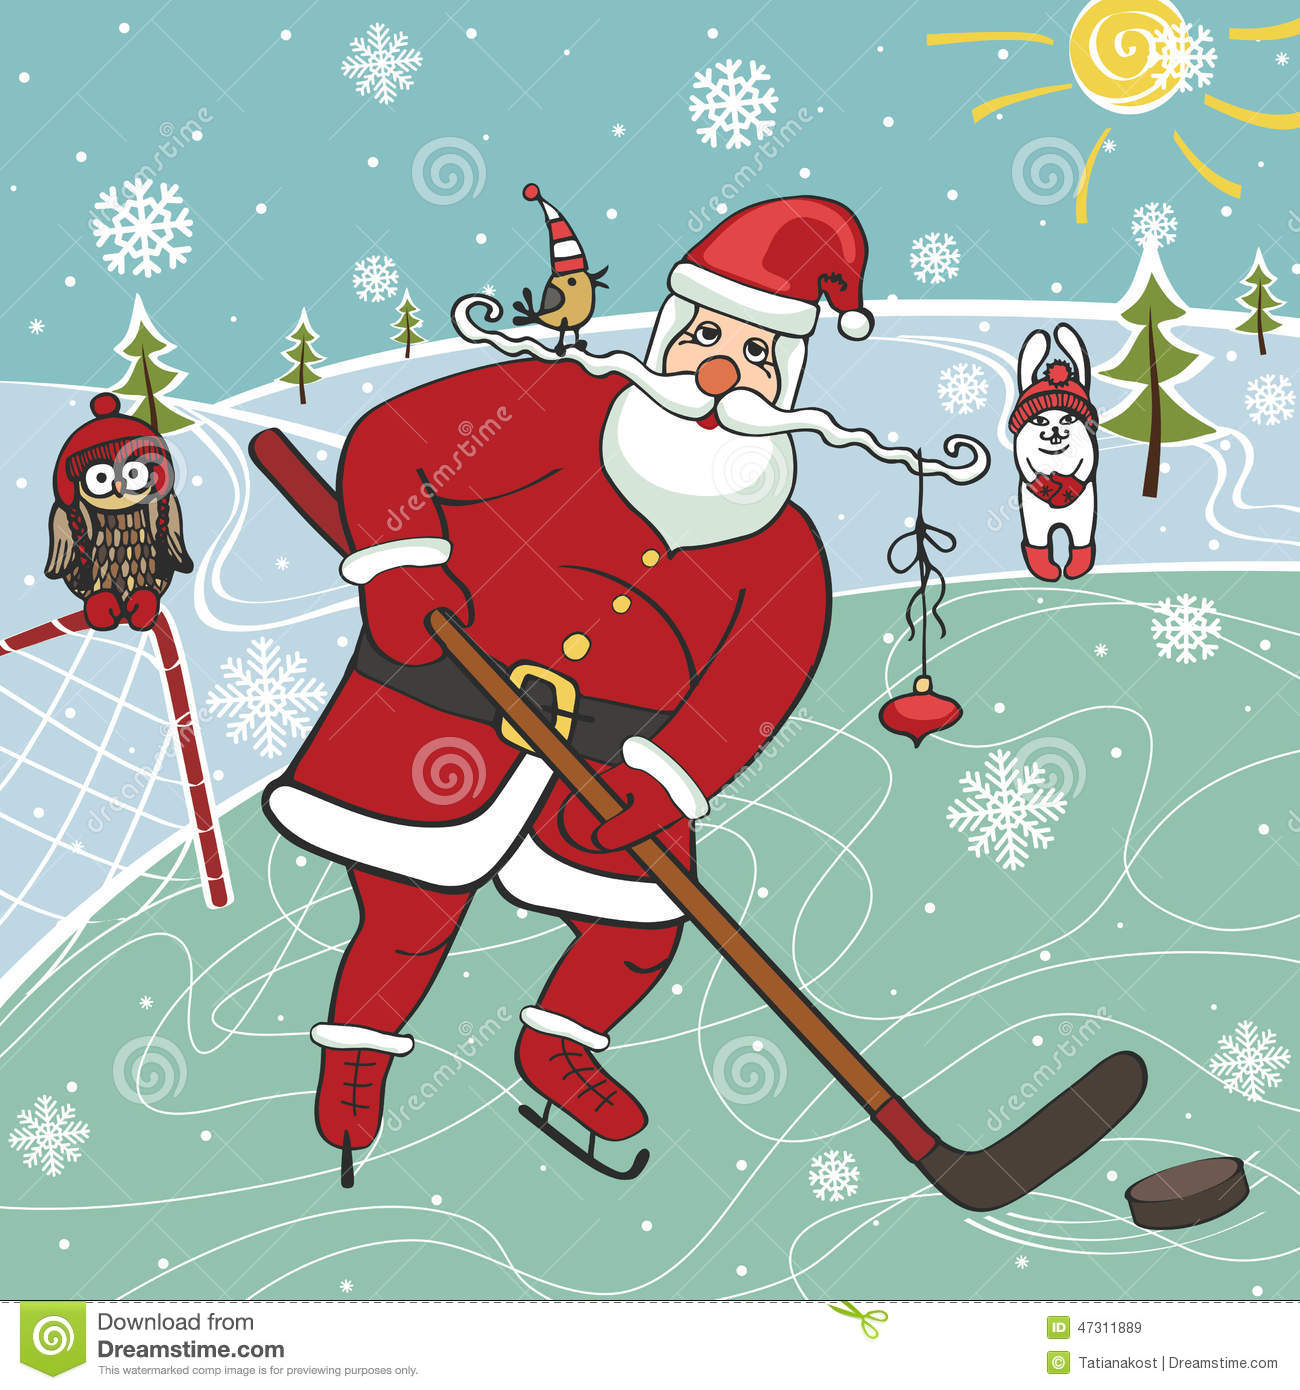 Hockey Santa Stock Photos, Images, & Pictures - 18 Images